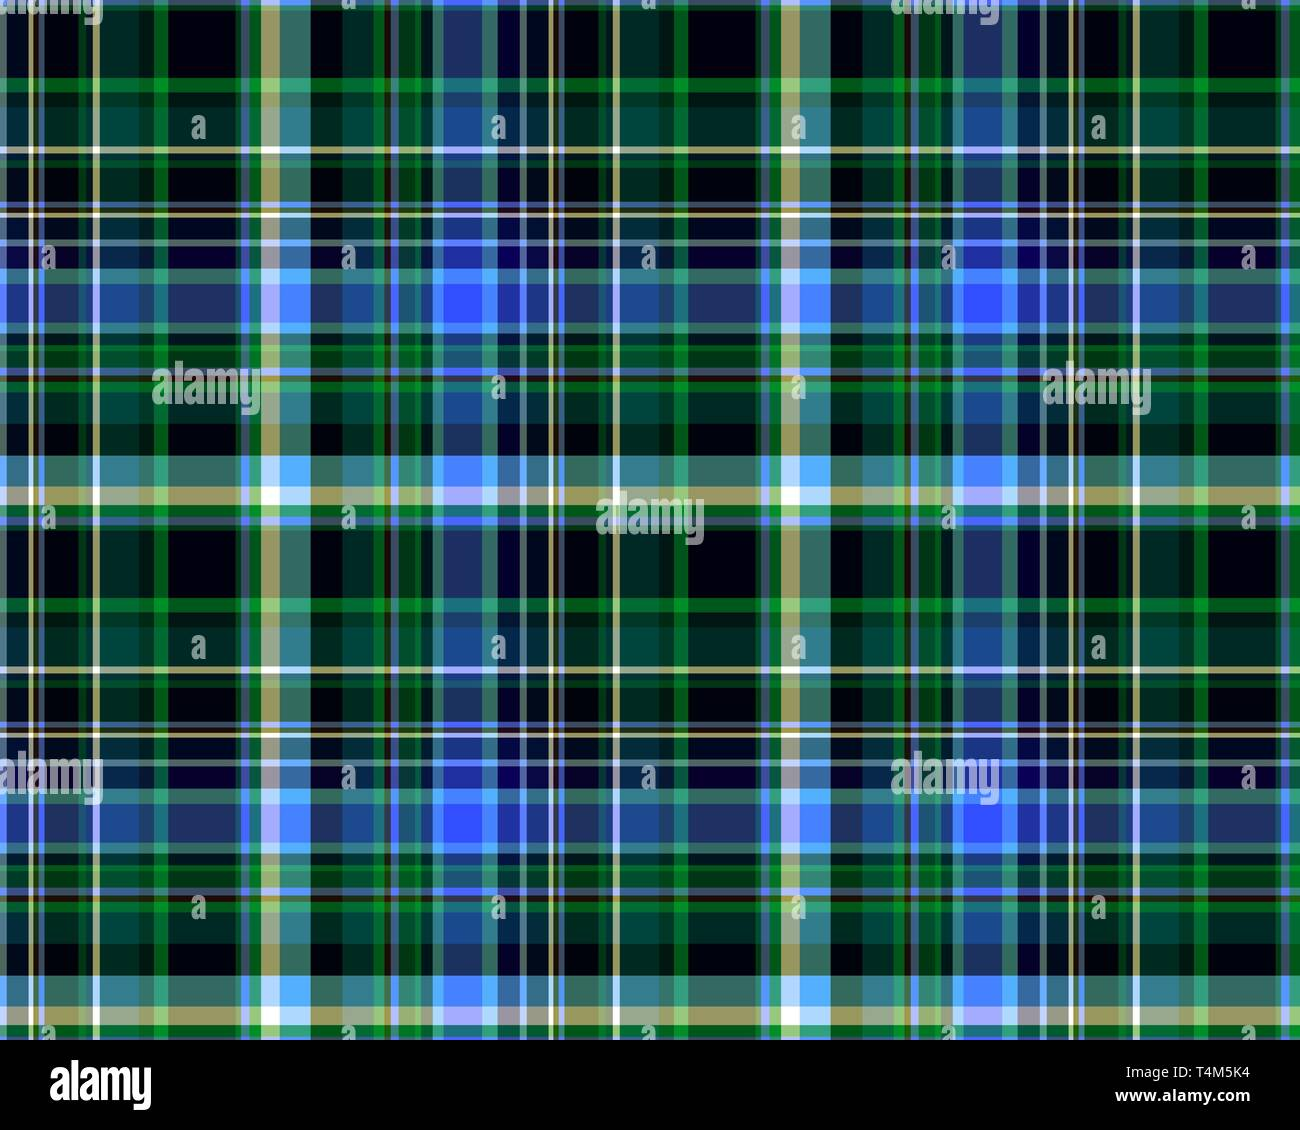 Seamless plaid pattern. fabric pattern. Checkered texture for clothing fabric prints, web design, home textile, tablecloths, clothes, shirts, dresses, - Stock Vector